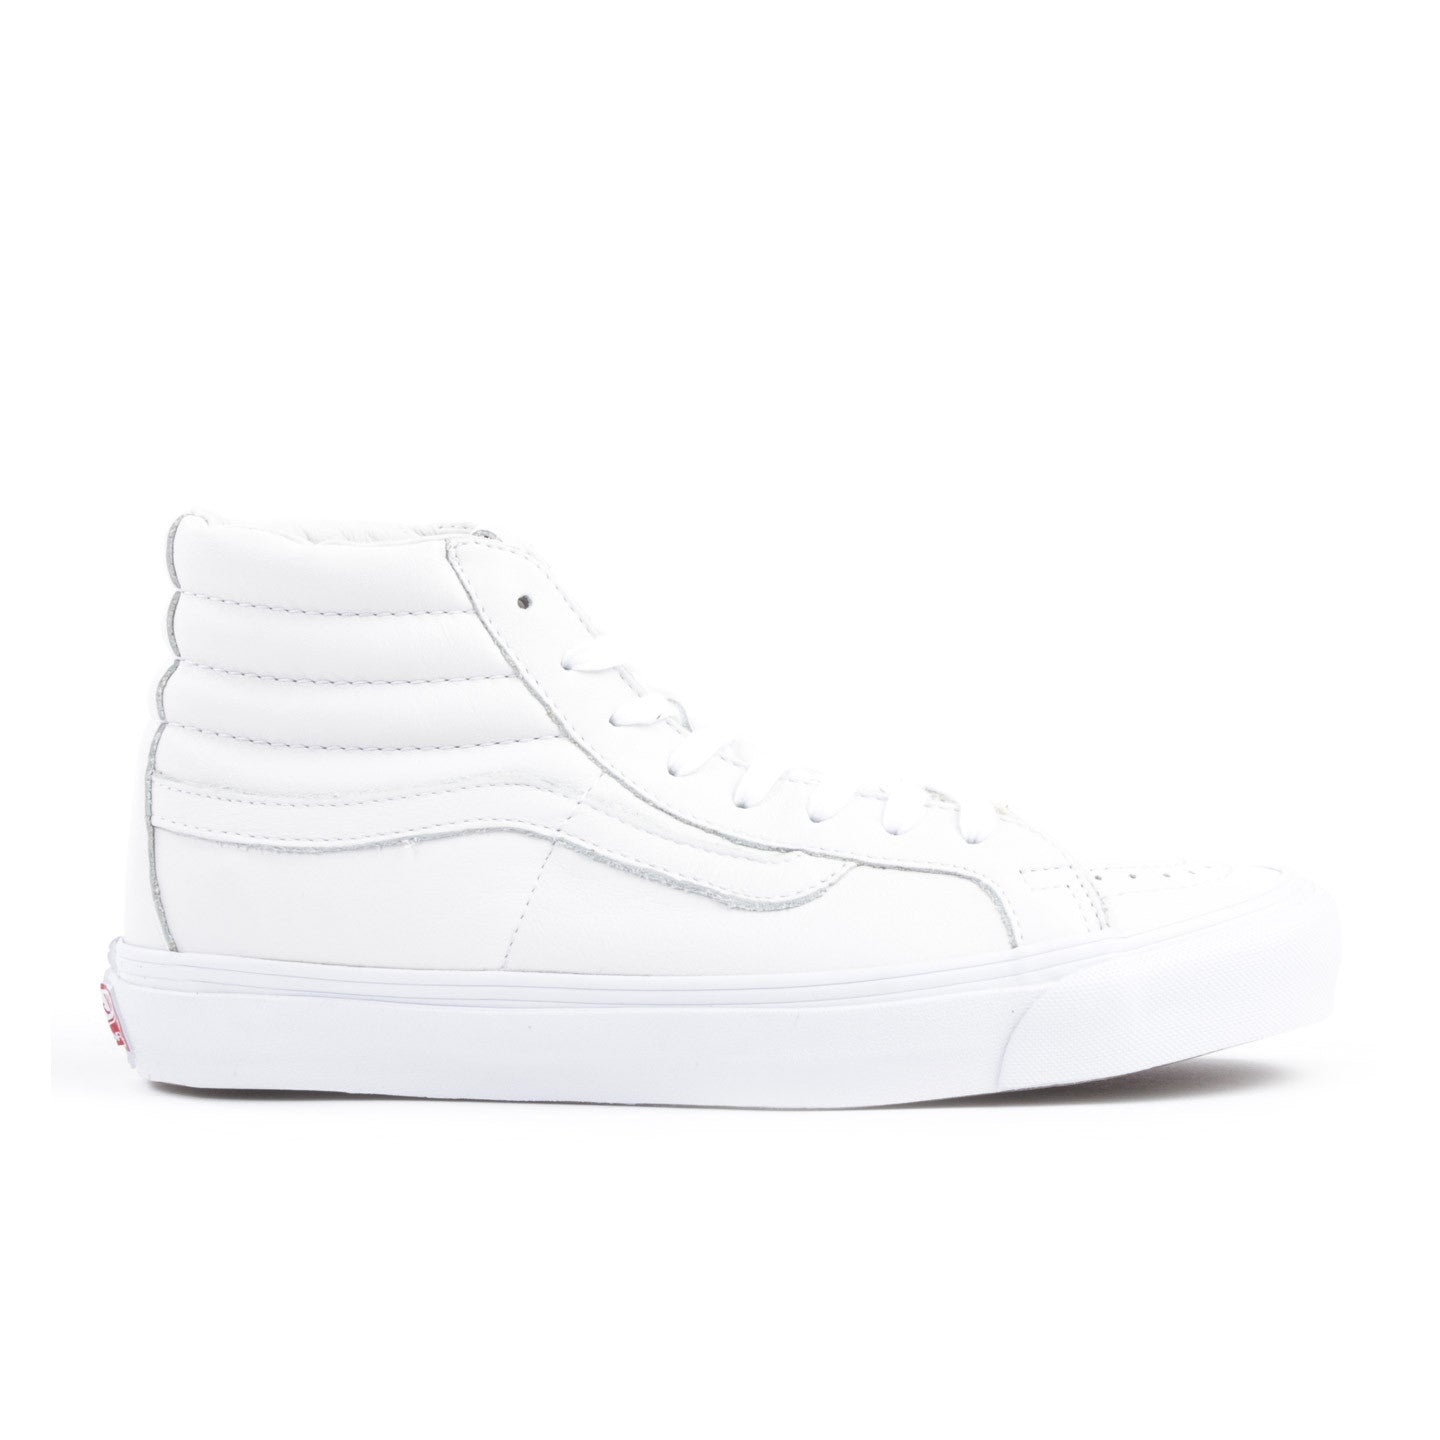 VAULT BY VANS OG SK8-HI LX WHITE LEATHER